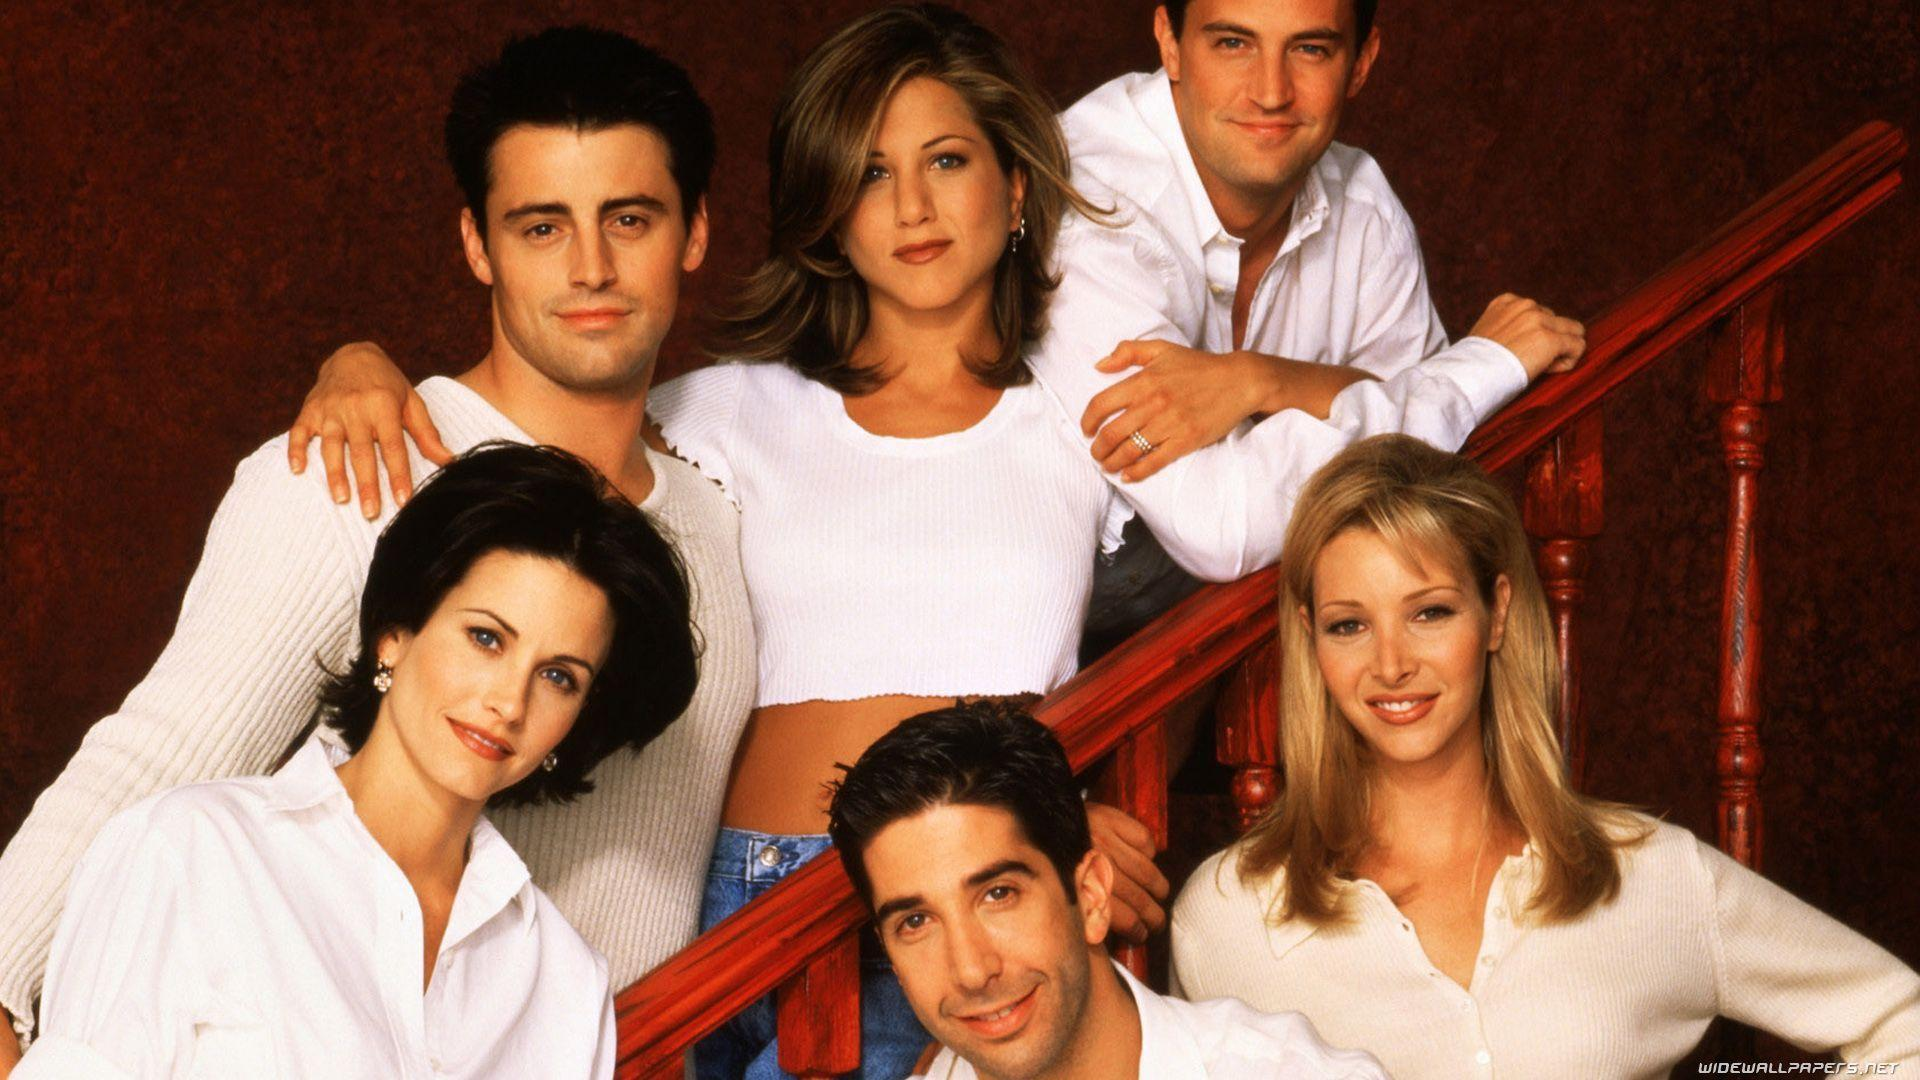 Friends Wallpapers HD characters comedy series